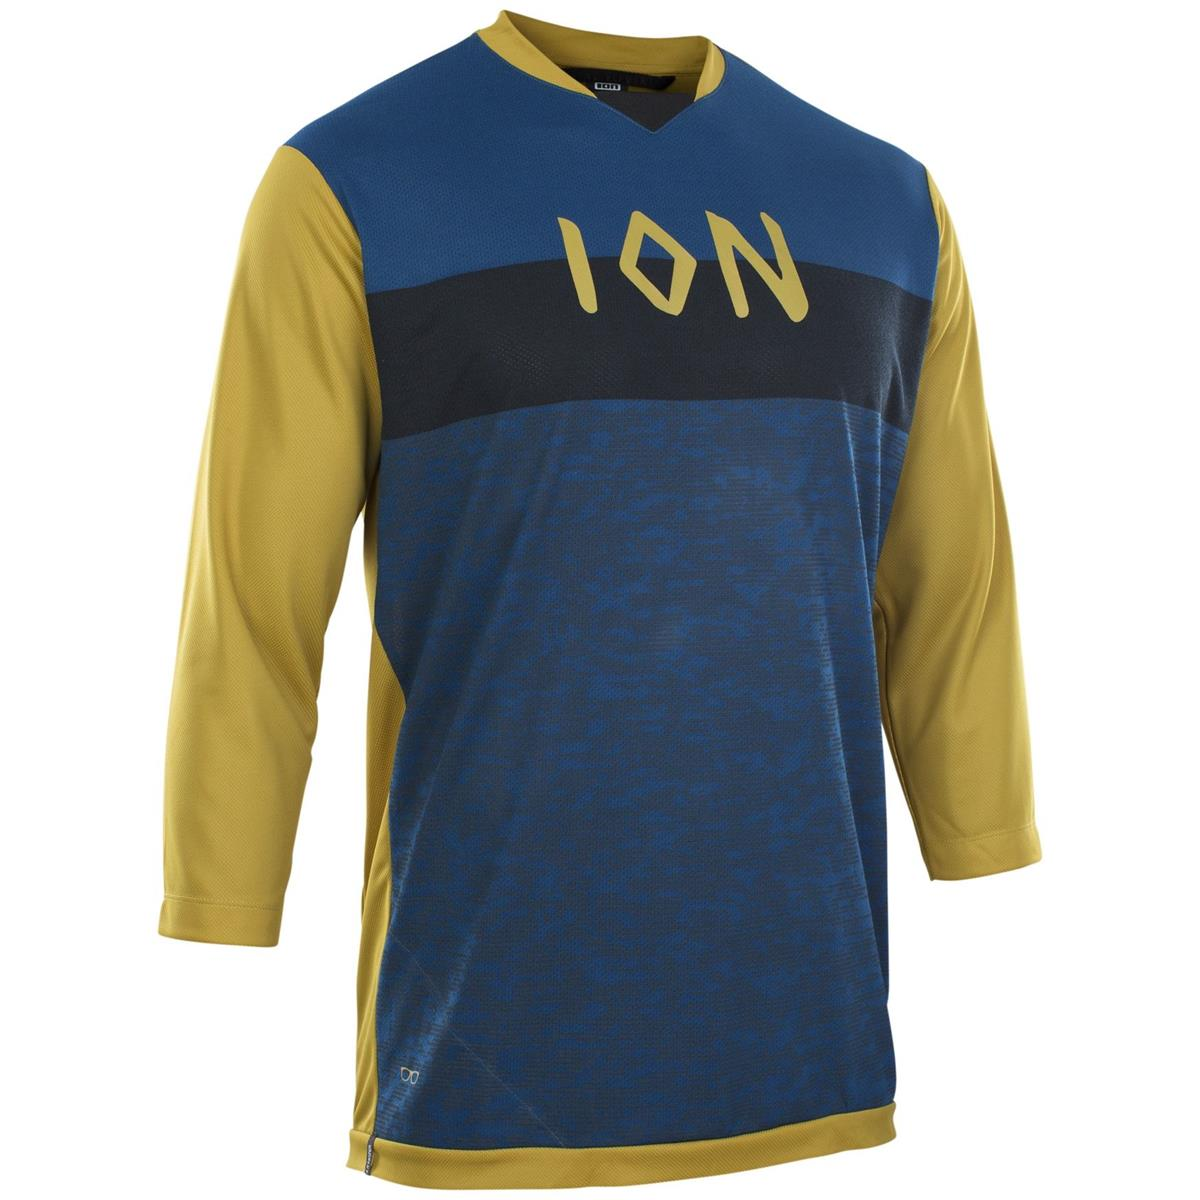 ION Freeride Jersey 3/4 Arm Scrub Amp Rusty Leaves